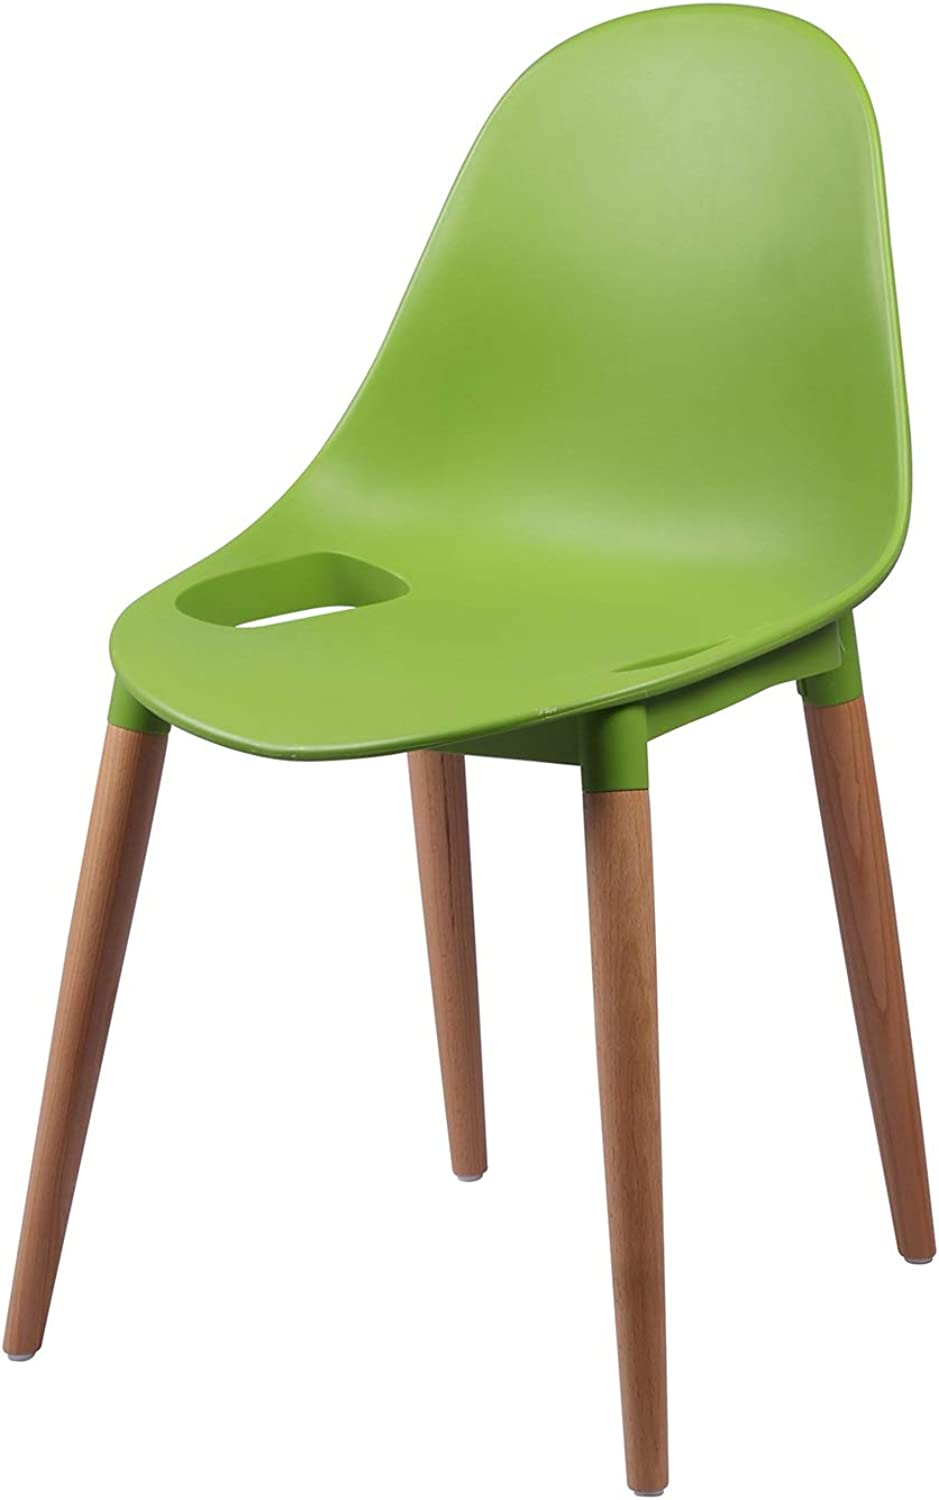 LRW Plastic Backrest Chair, Adult Leisure Chair, Solid Wood Office Chair, Creative Conference Chair, Green